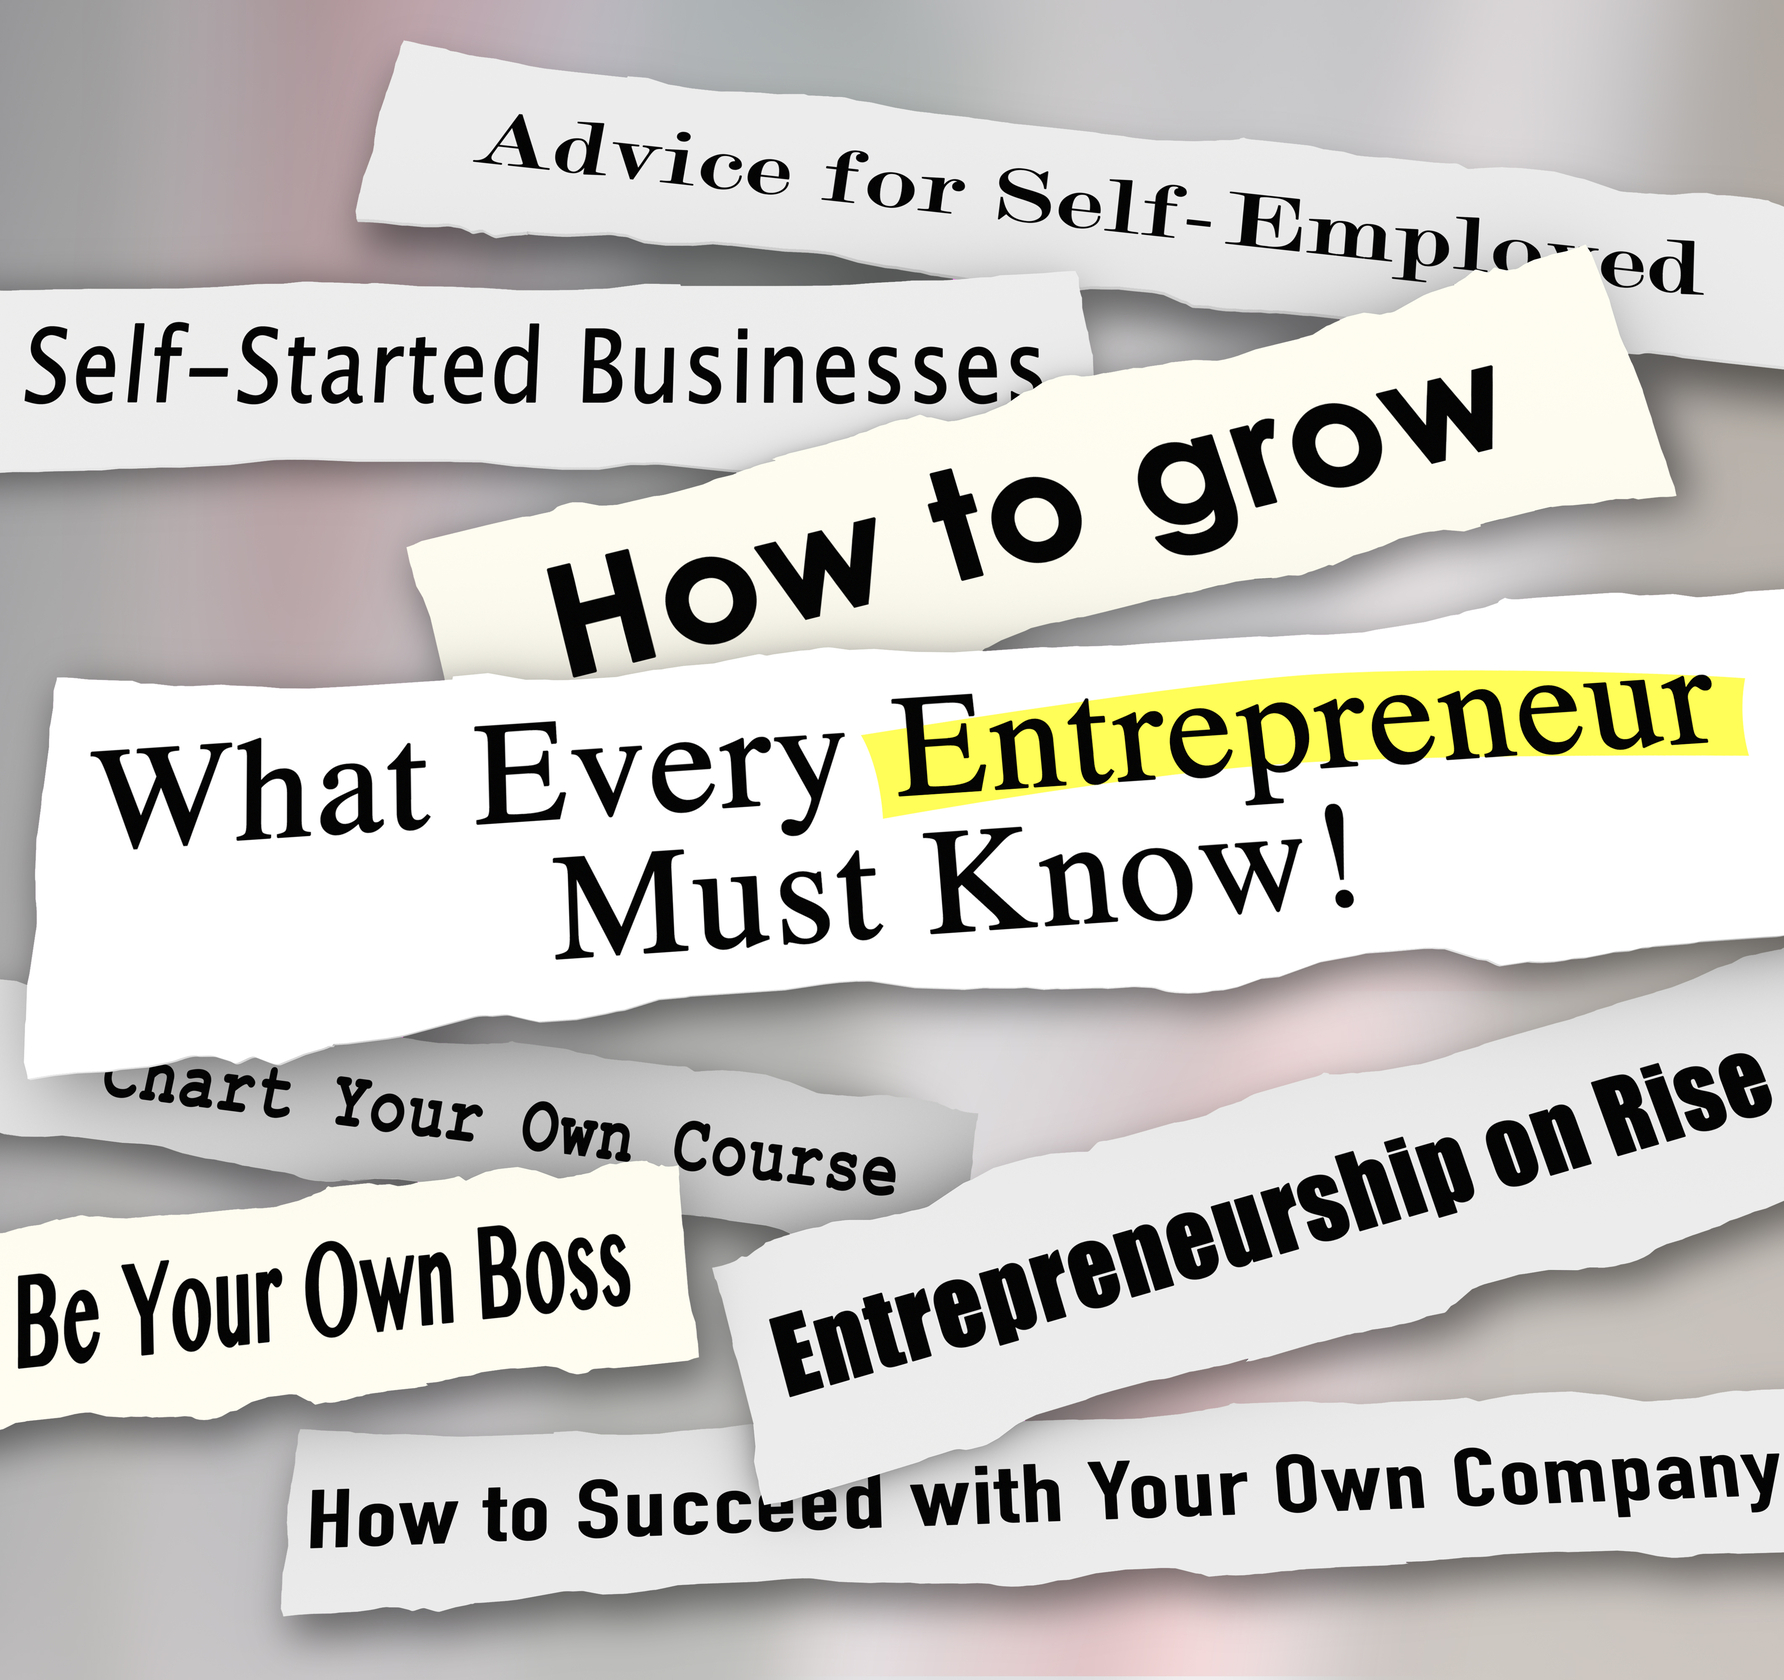 Start your own business become an entrepreneur training